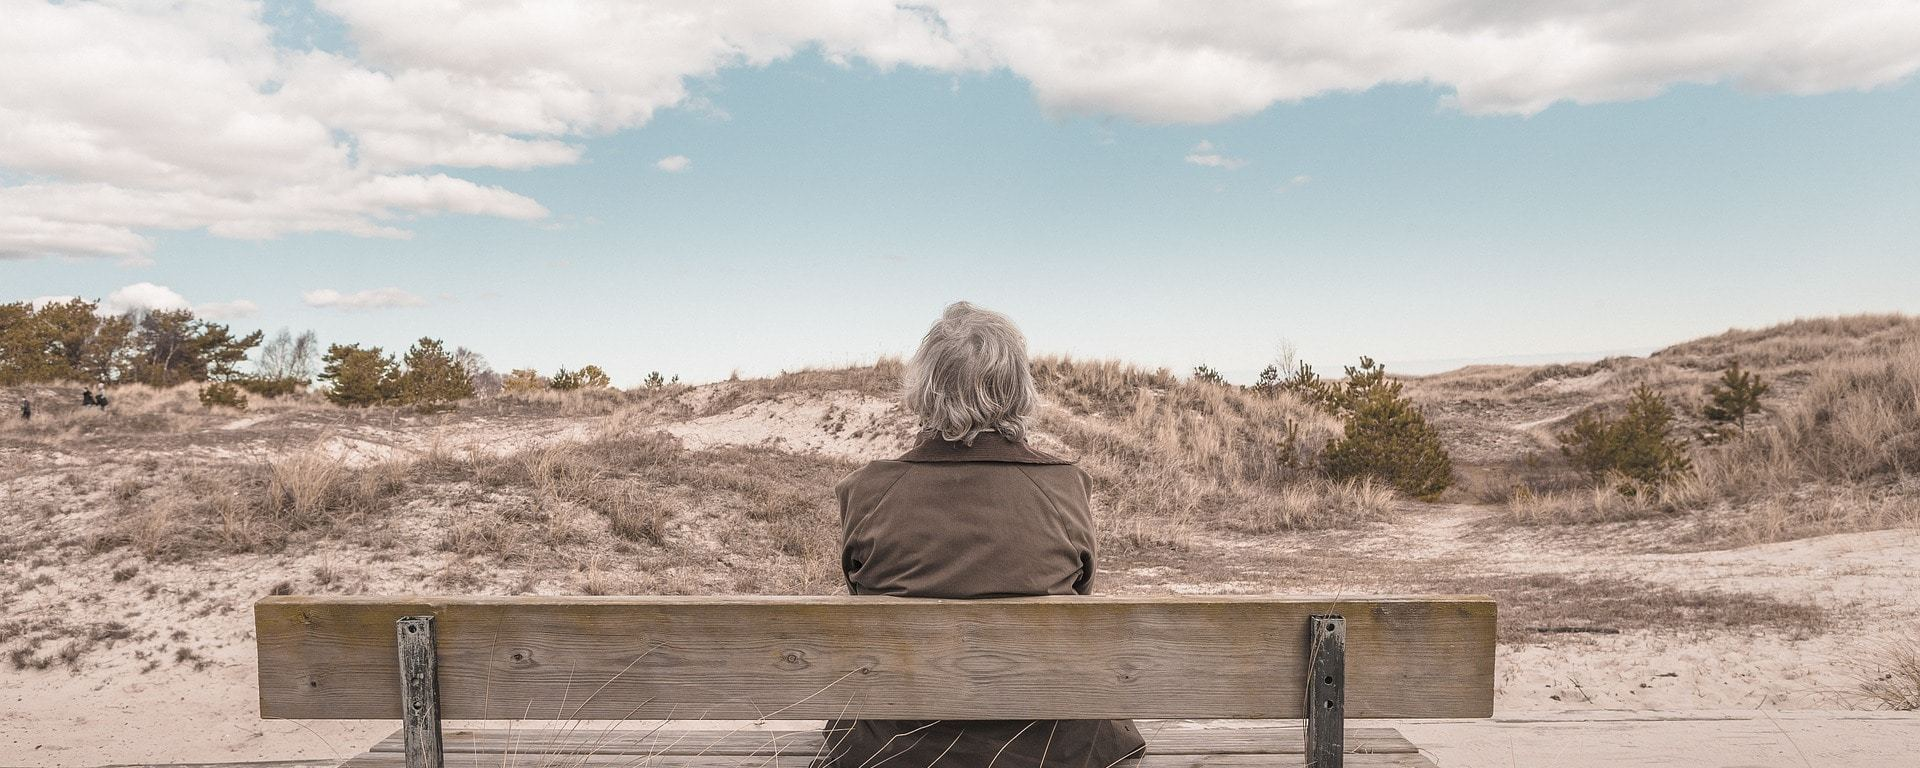 Why We Need Old People The Gift of Perspective